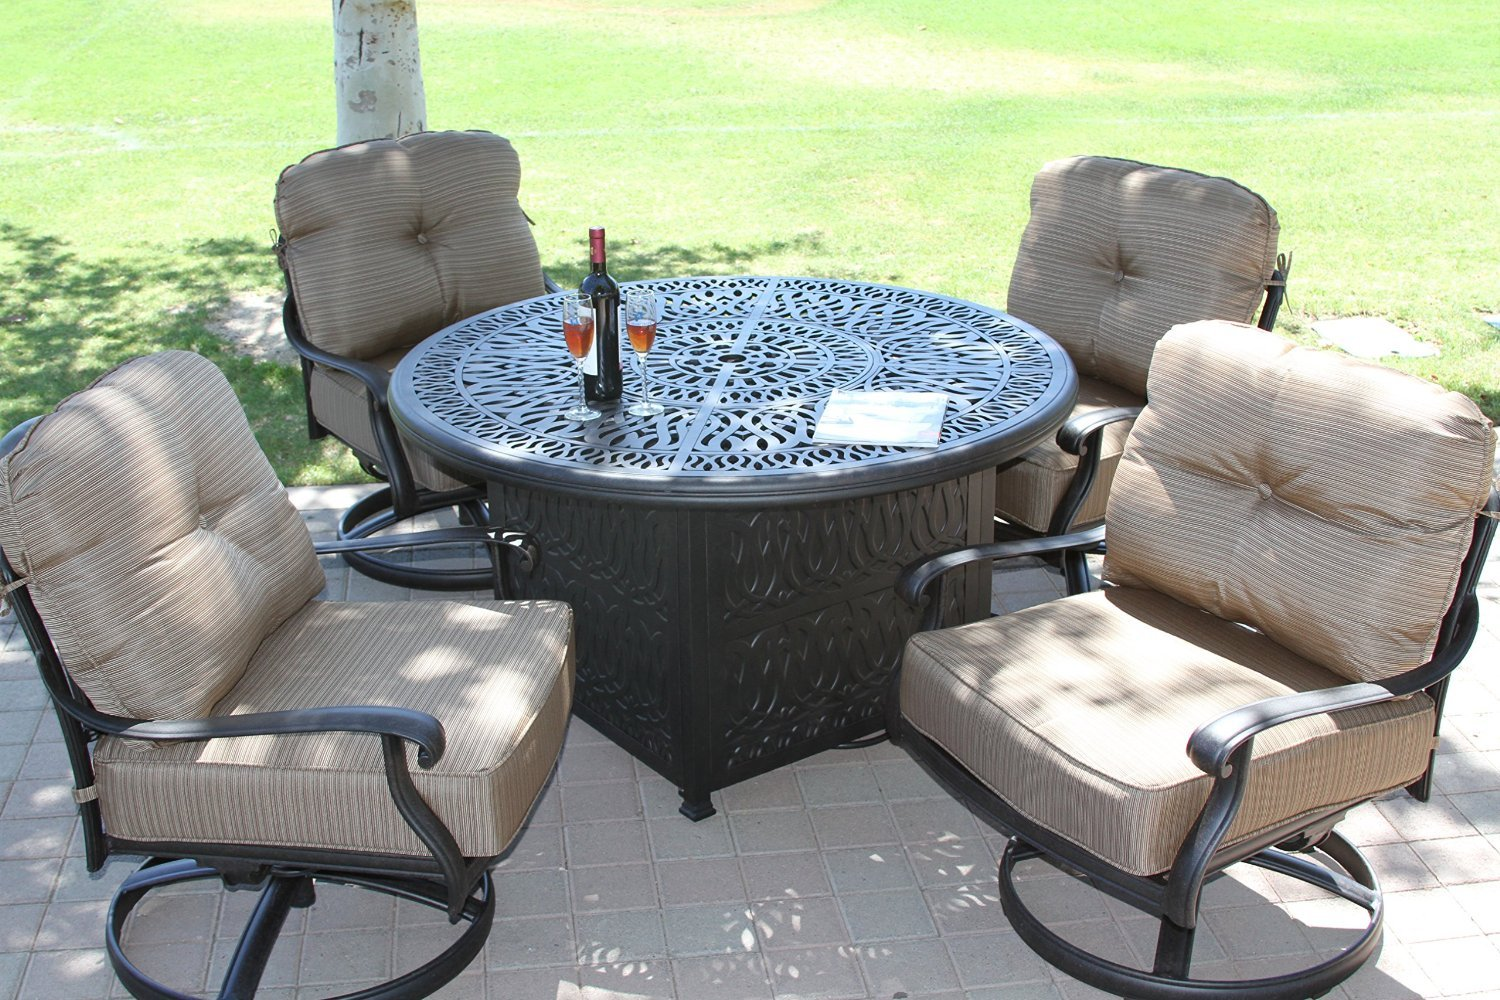 Outdoor Patio Furniture Set With A Fire Pit-8 Designs